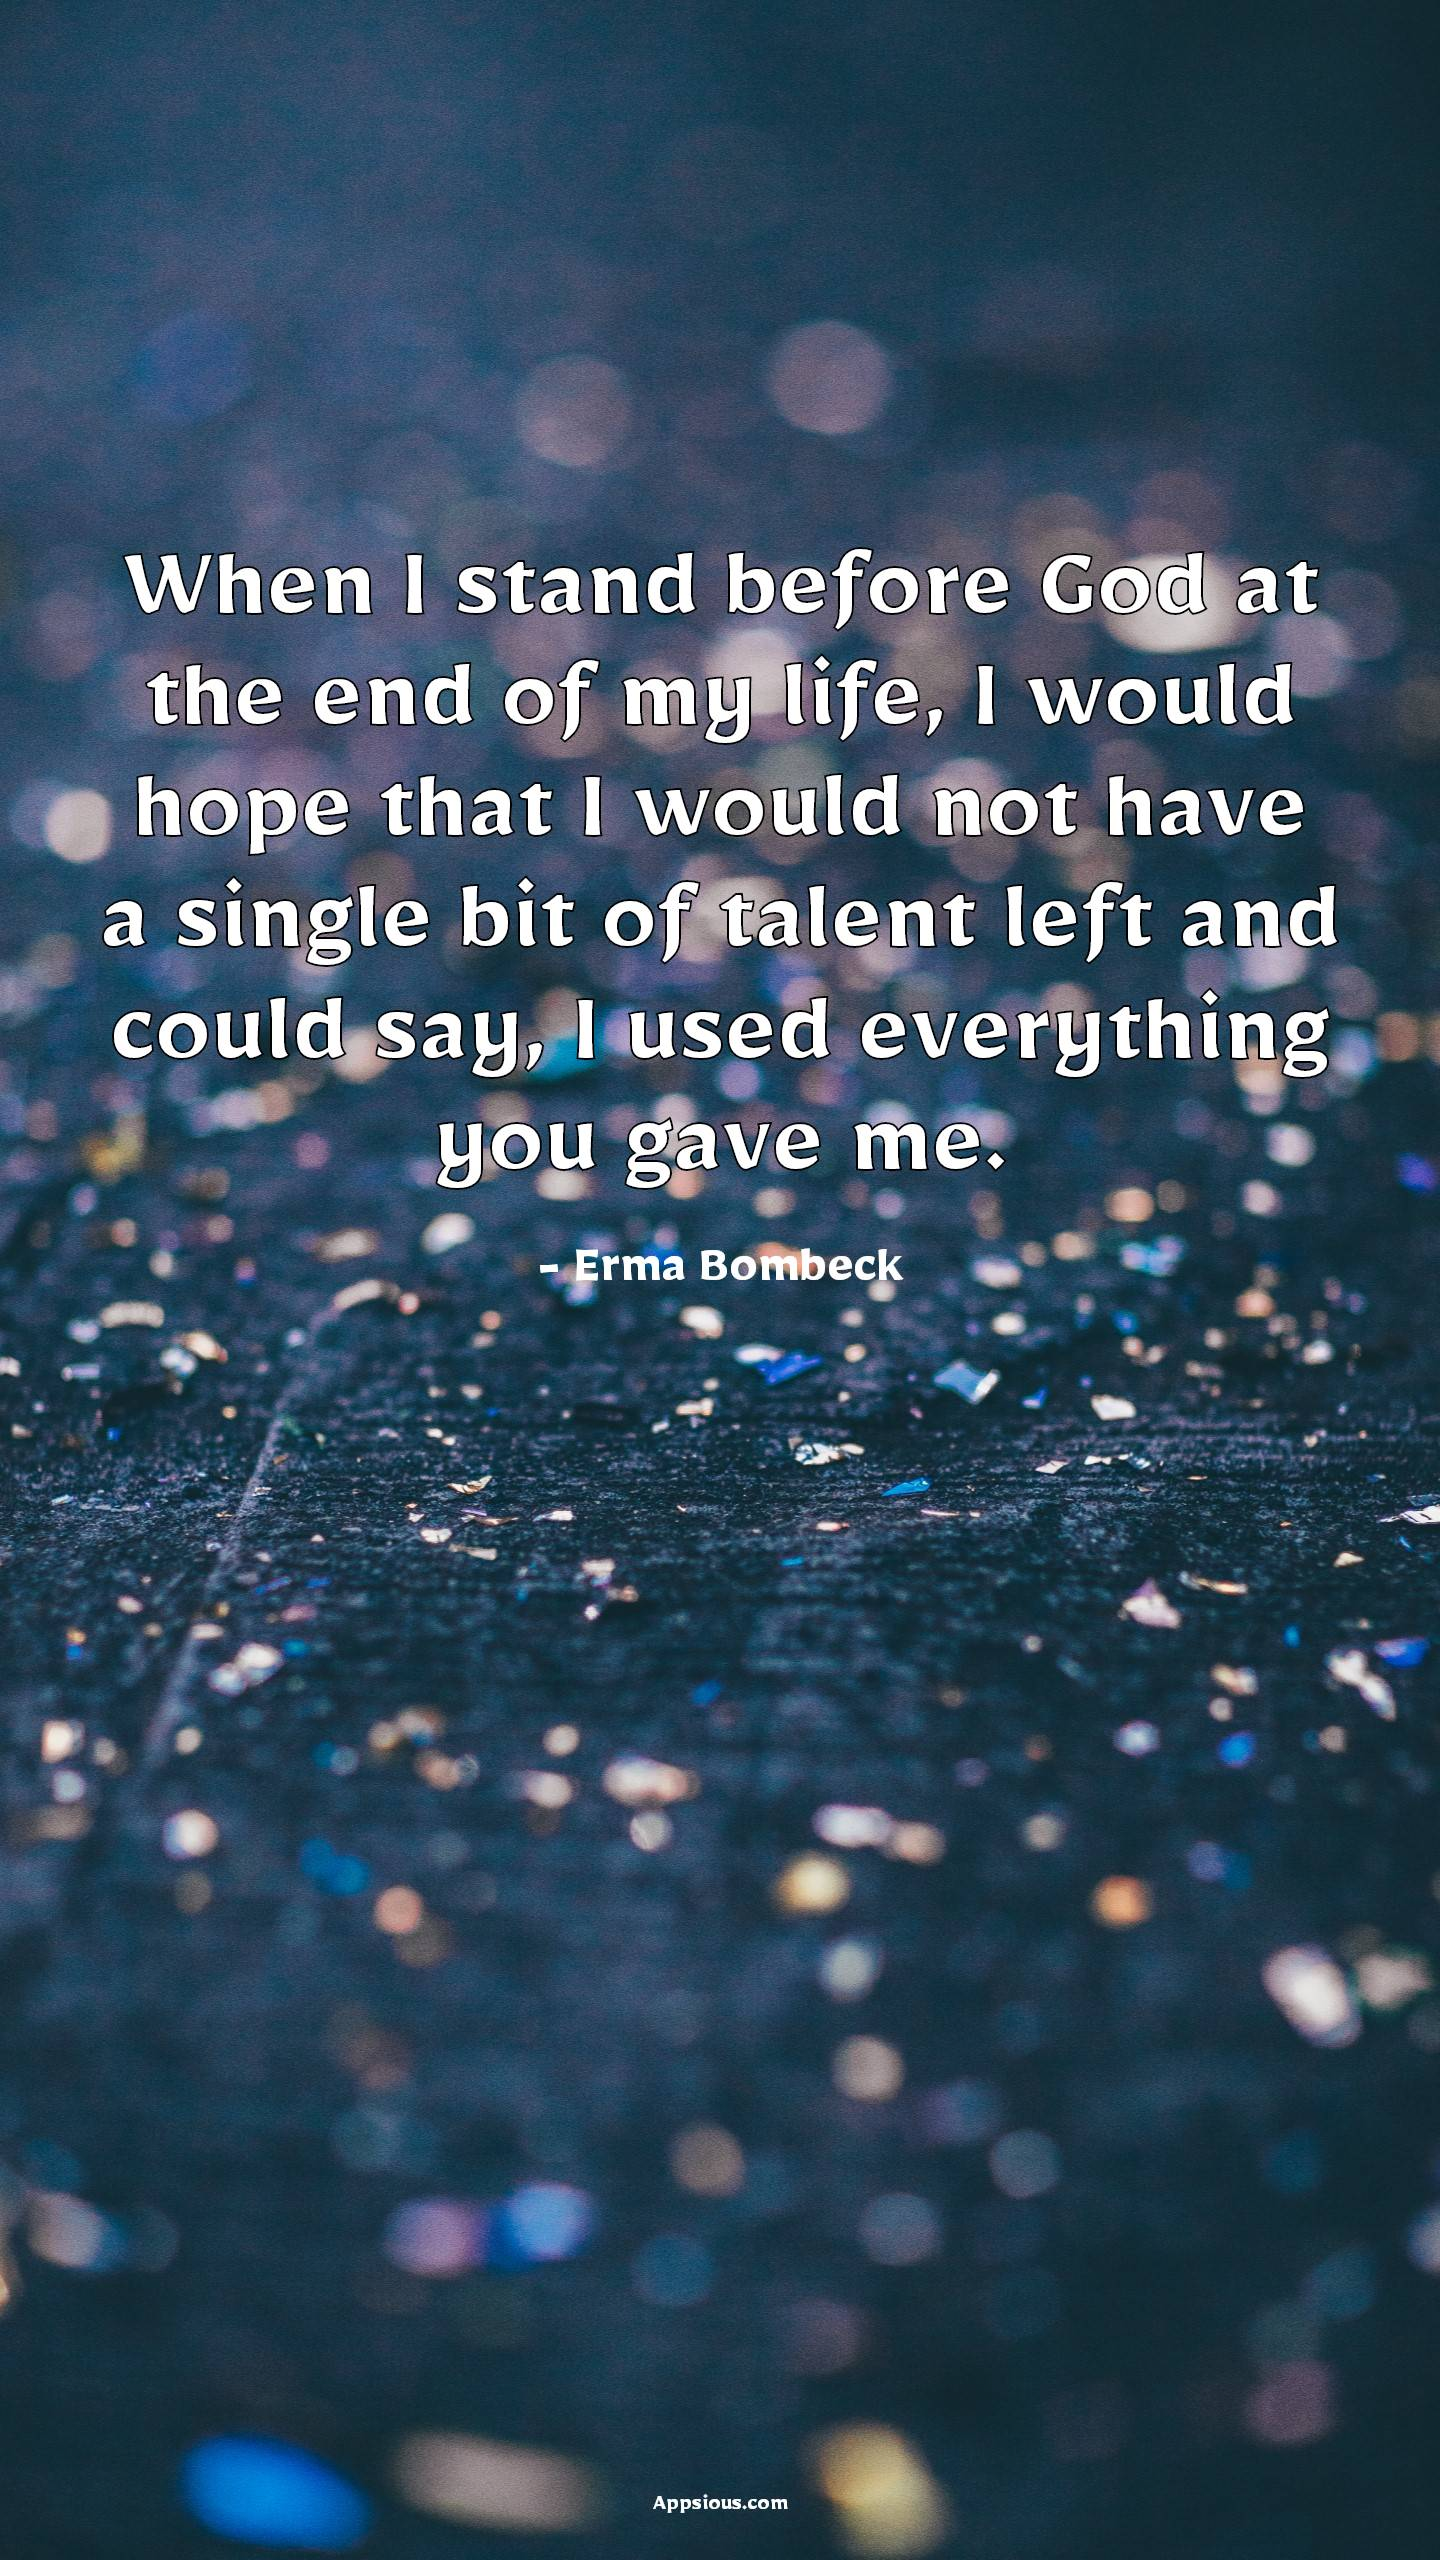 When I stand before God at the end of my life, I would hope that I would not have a single bit of talent left and could say, I used everything you gave me.